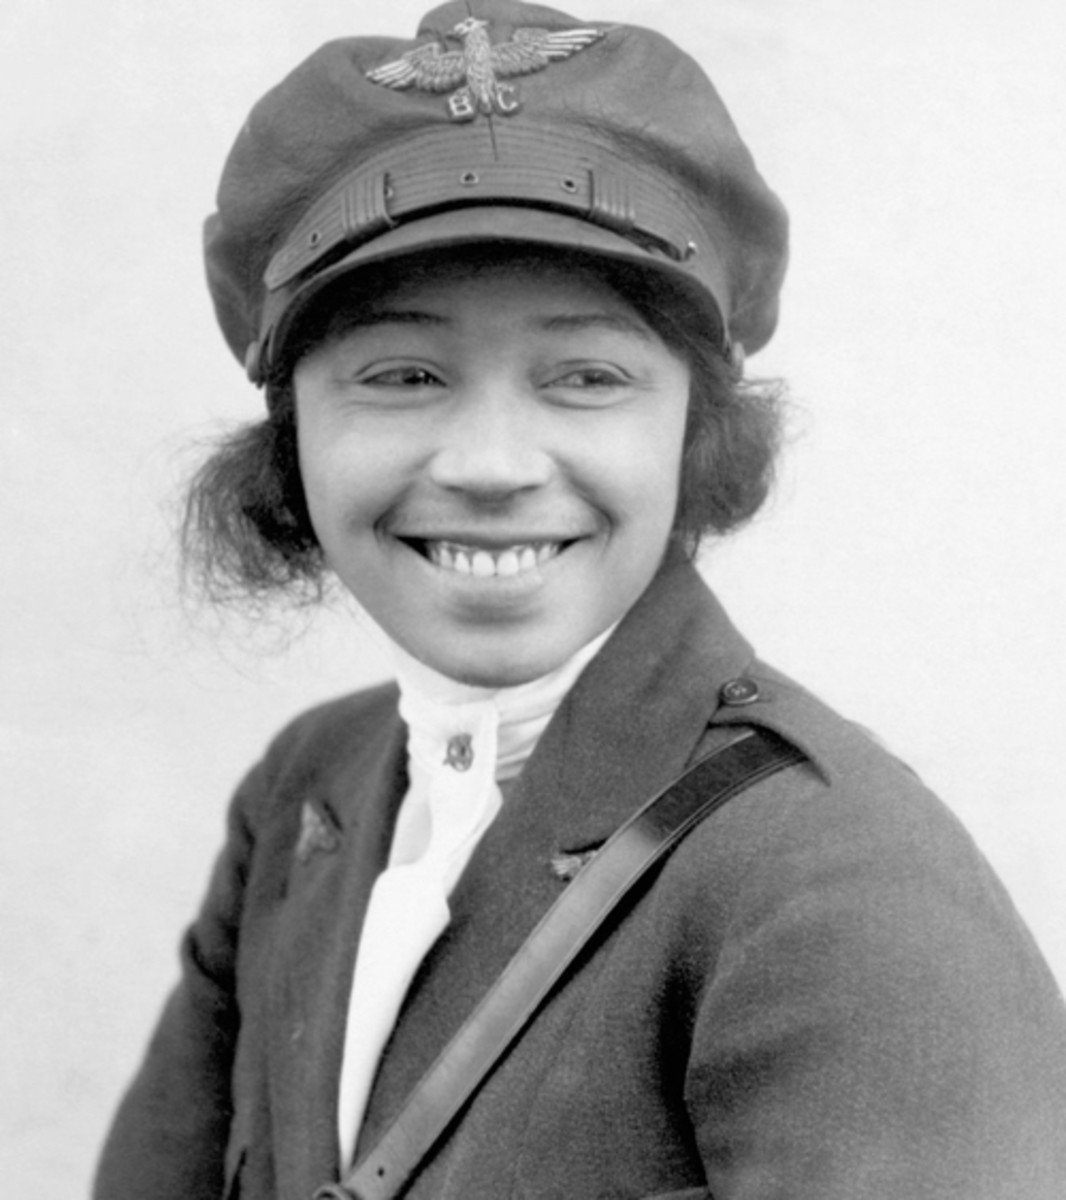 D47mAMqXkAEal0d - Bessie Coleman was an American civil aviator. She was the first woman of African-American descent, and the first of Native American descent, to hold a pilot license. She achieved her international pilot license in 1921.